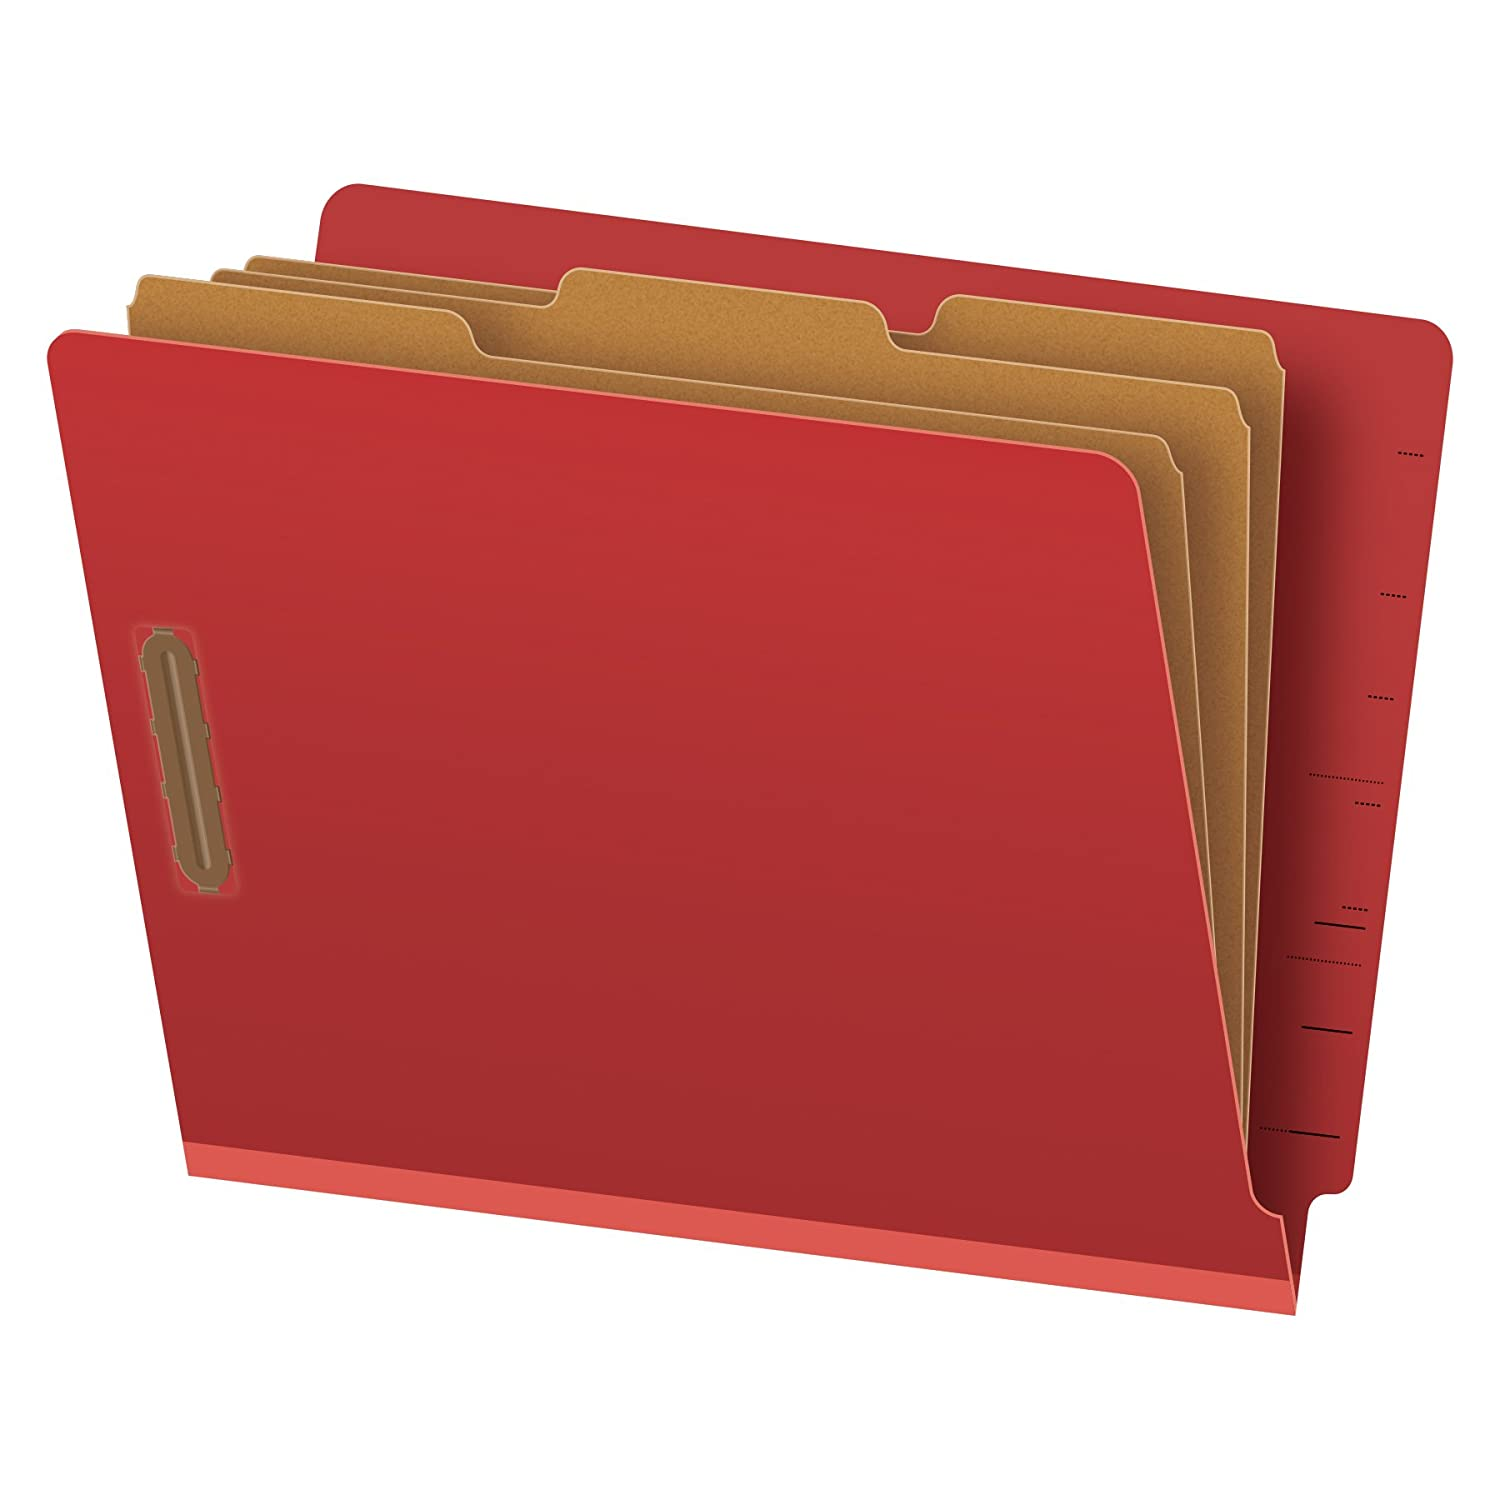 Globe-Weis End Tab Classification Folders, 3 Dividers, 2-Inch Embedded Fasteners, Letter Size, Red, 10 Folders Per Box (23865GW)